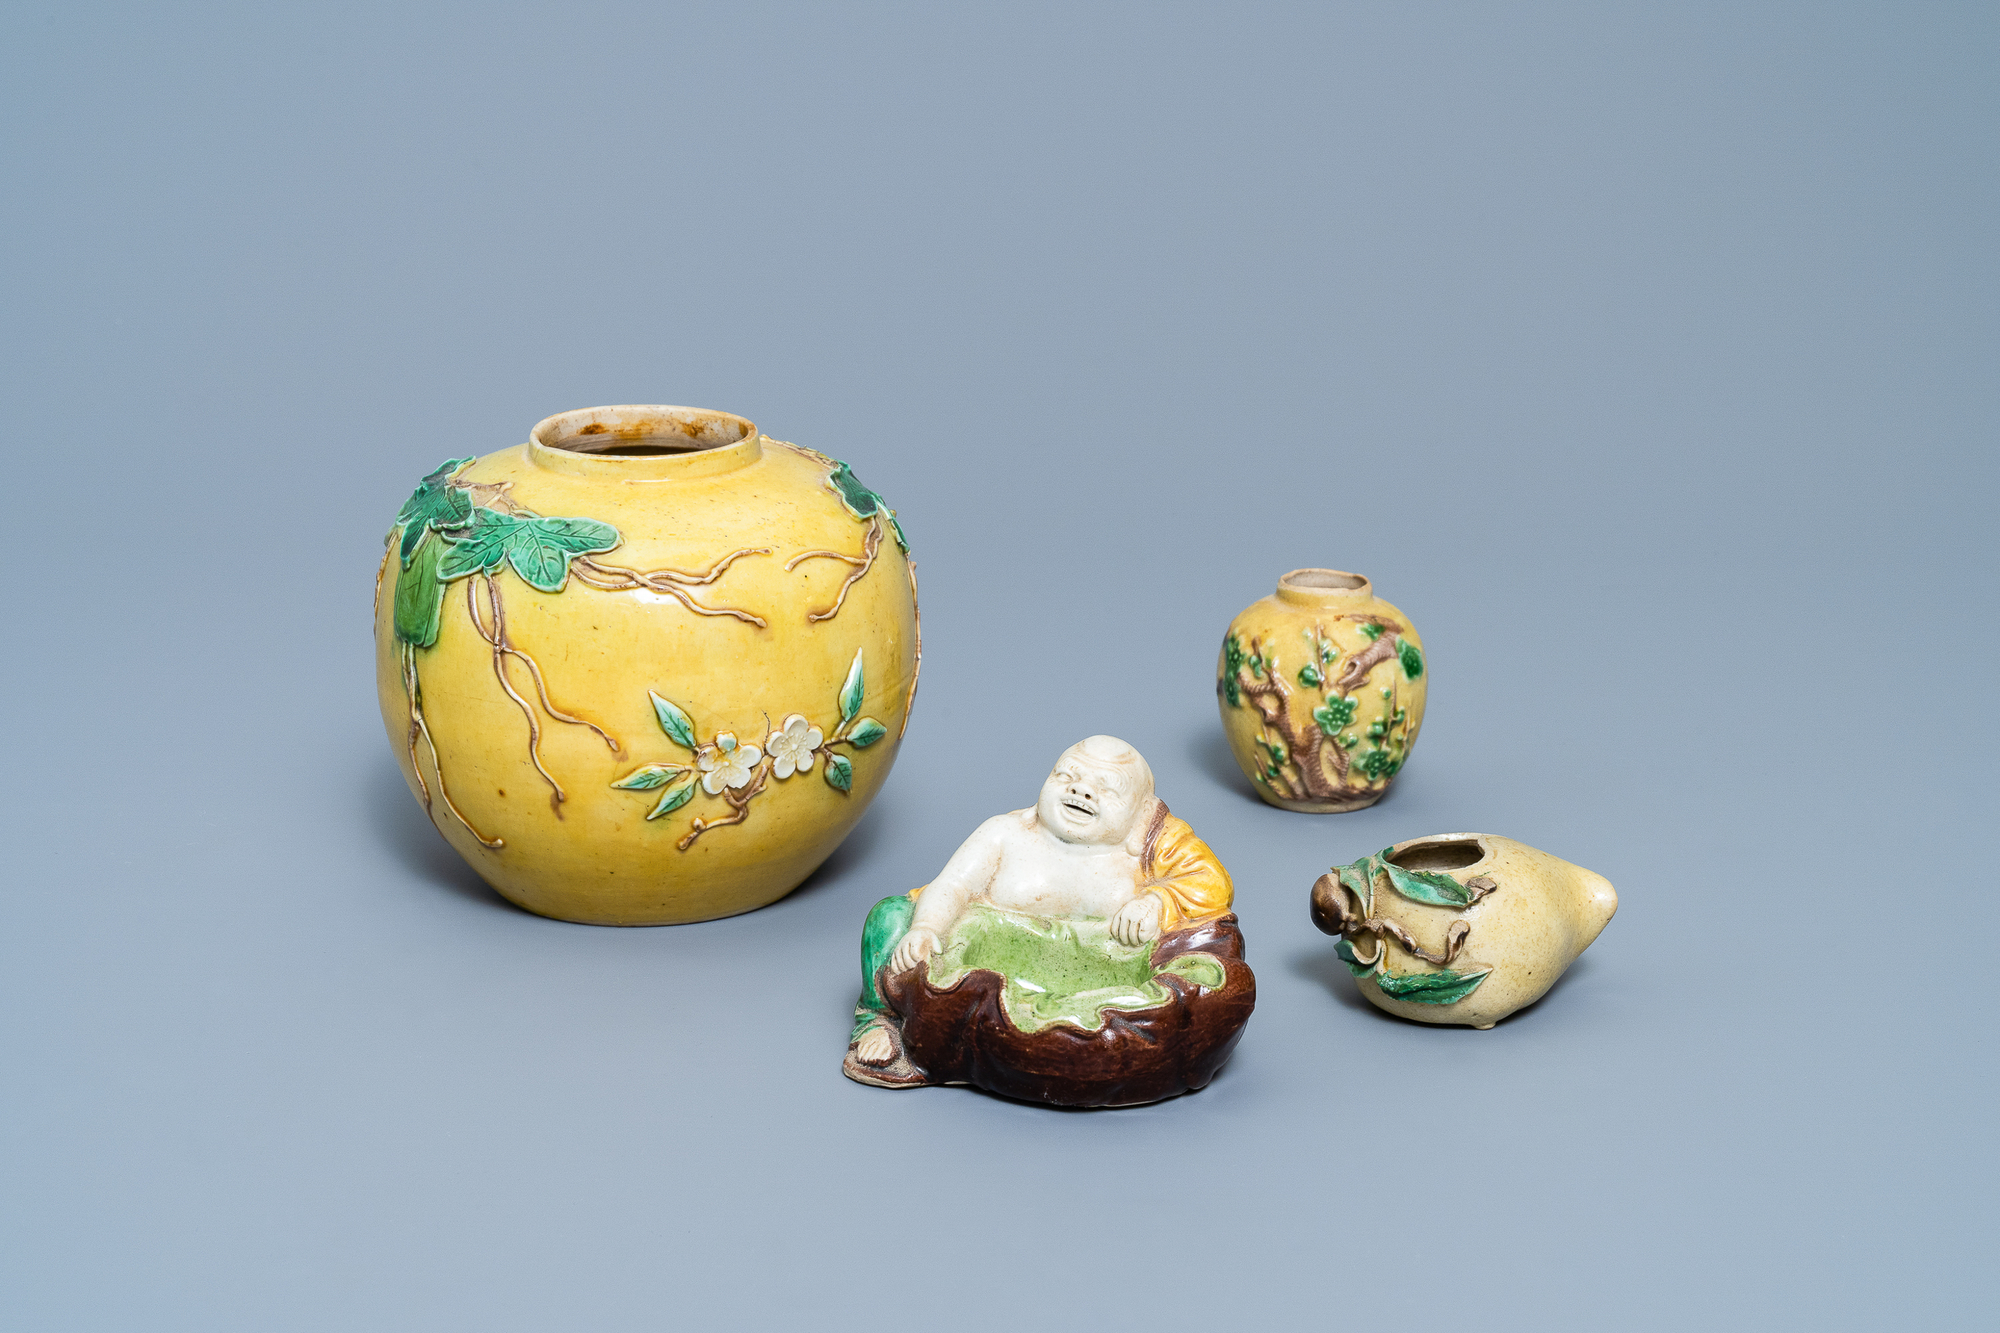 Two Chinese biscuit jars, a Buddha figure and a brushwasher, 19/20th C.